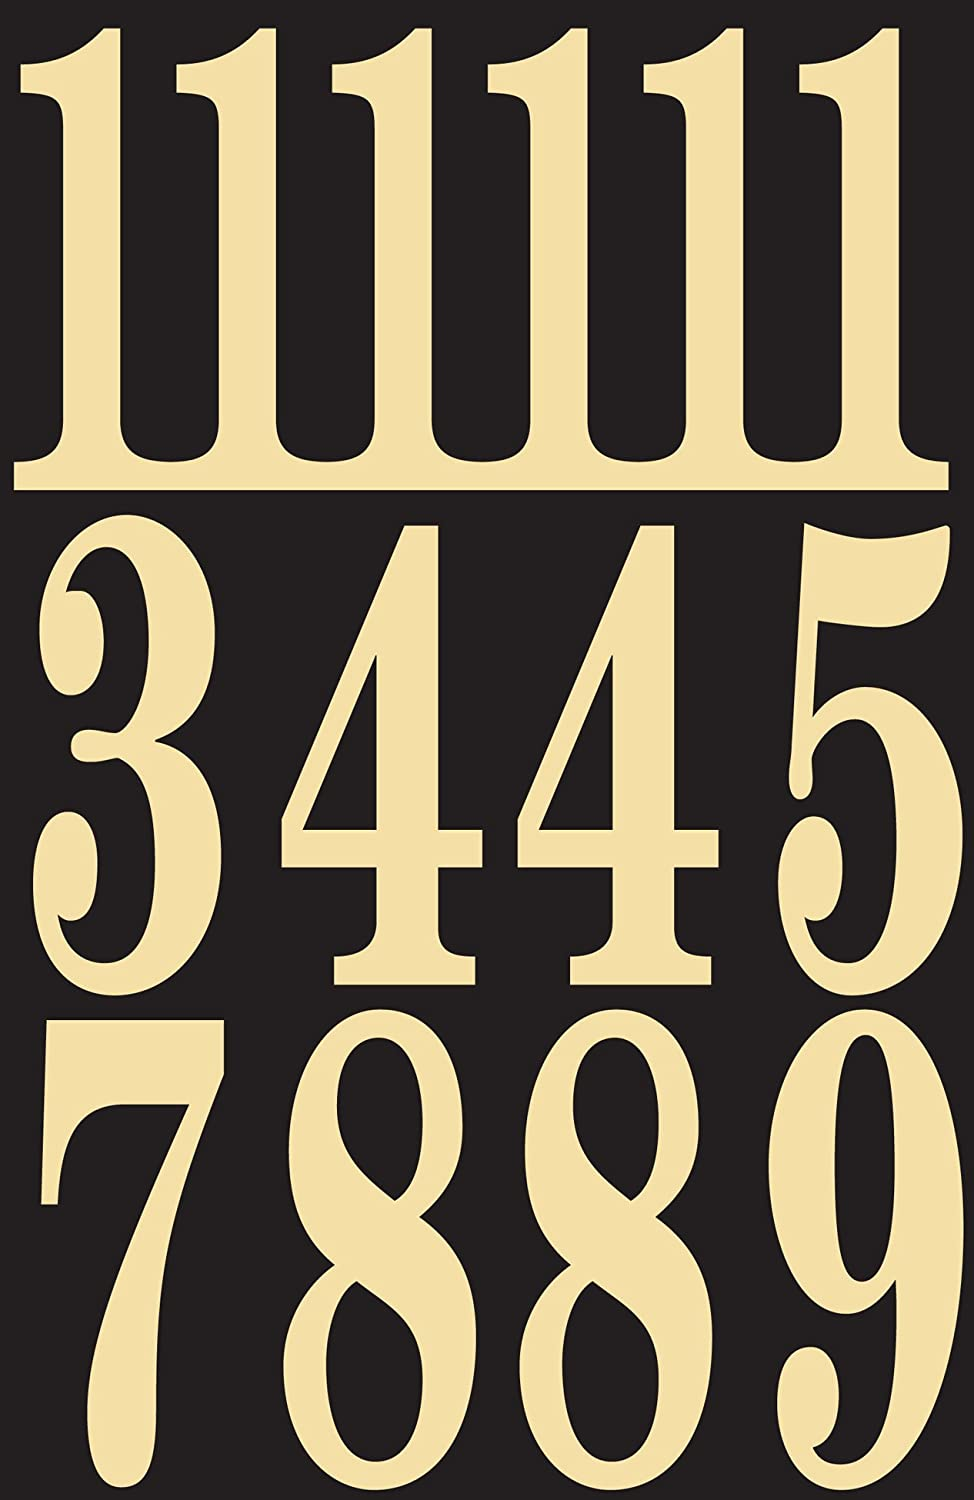 Self Adhesive Vinyl Numbers 3 Inch - Black and Gold HY-KO PRODUCTS Jensen (Home Improvement) MM-5N